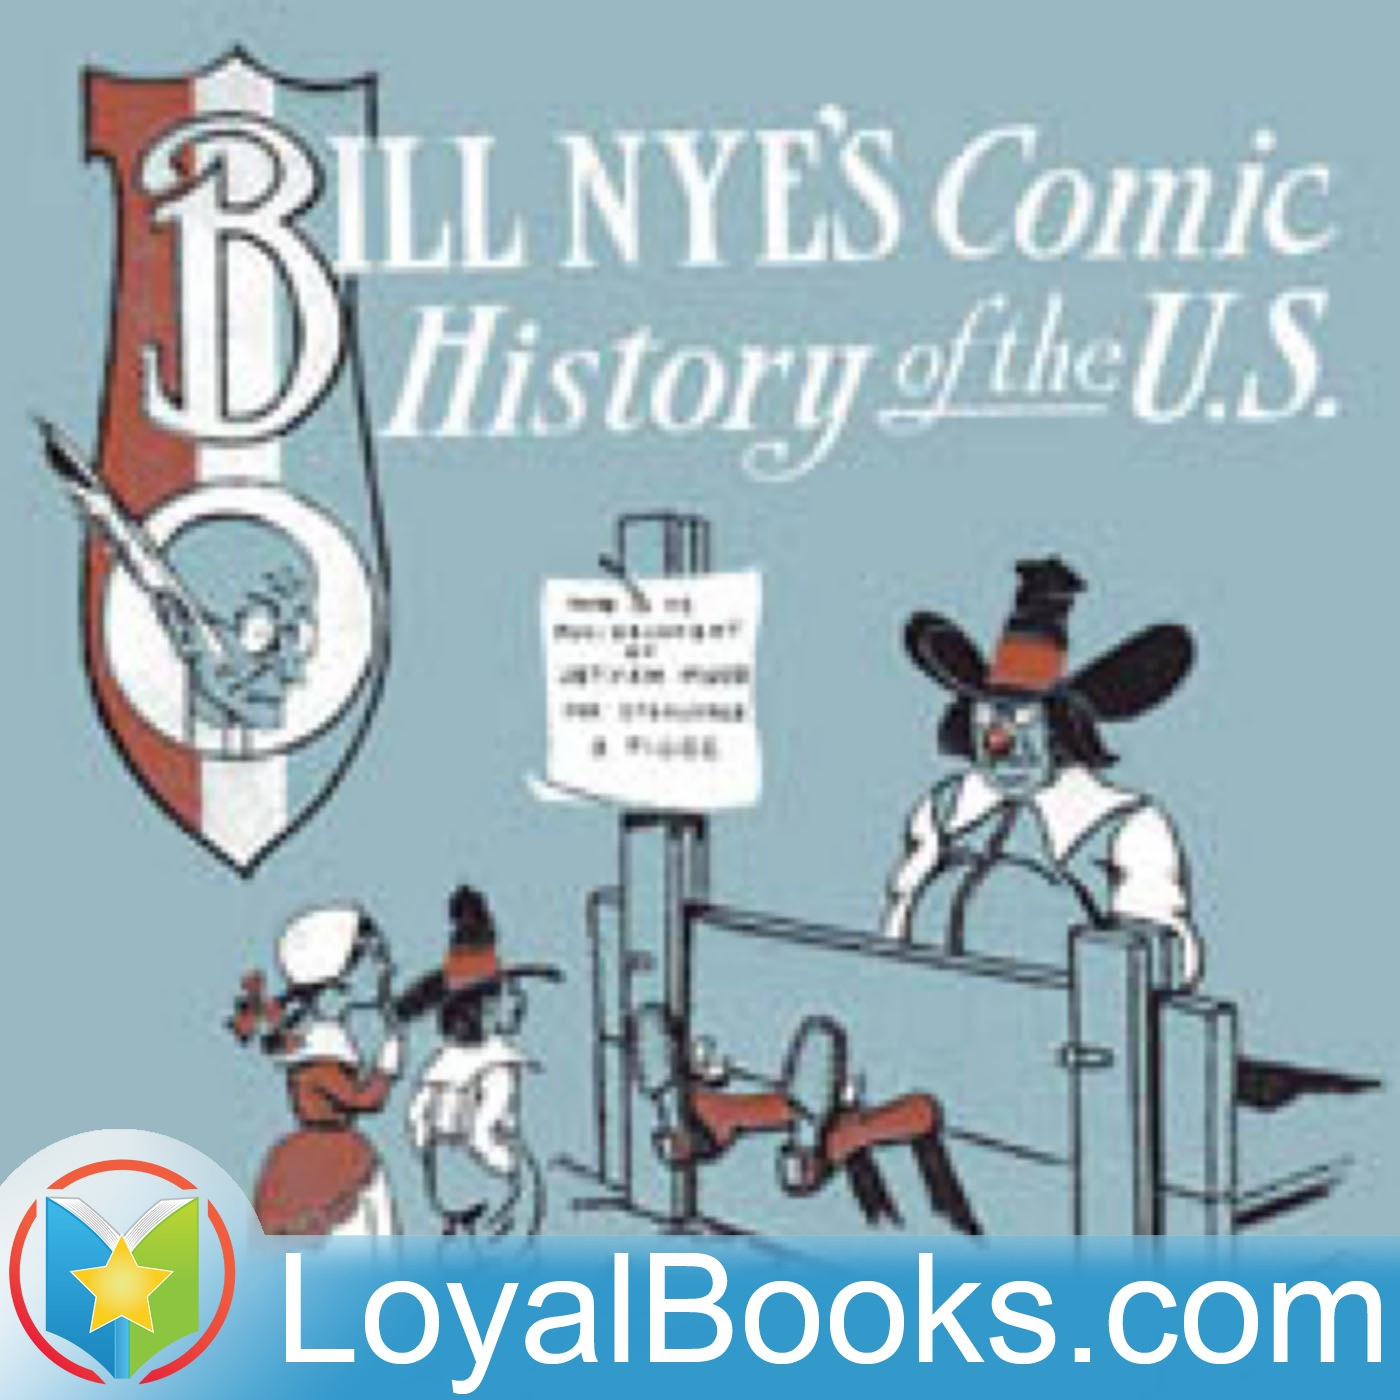 <![CDATA[Comic History of the United States by Bill Nye]]>